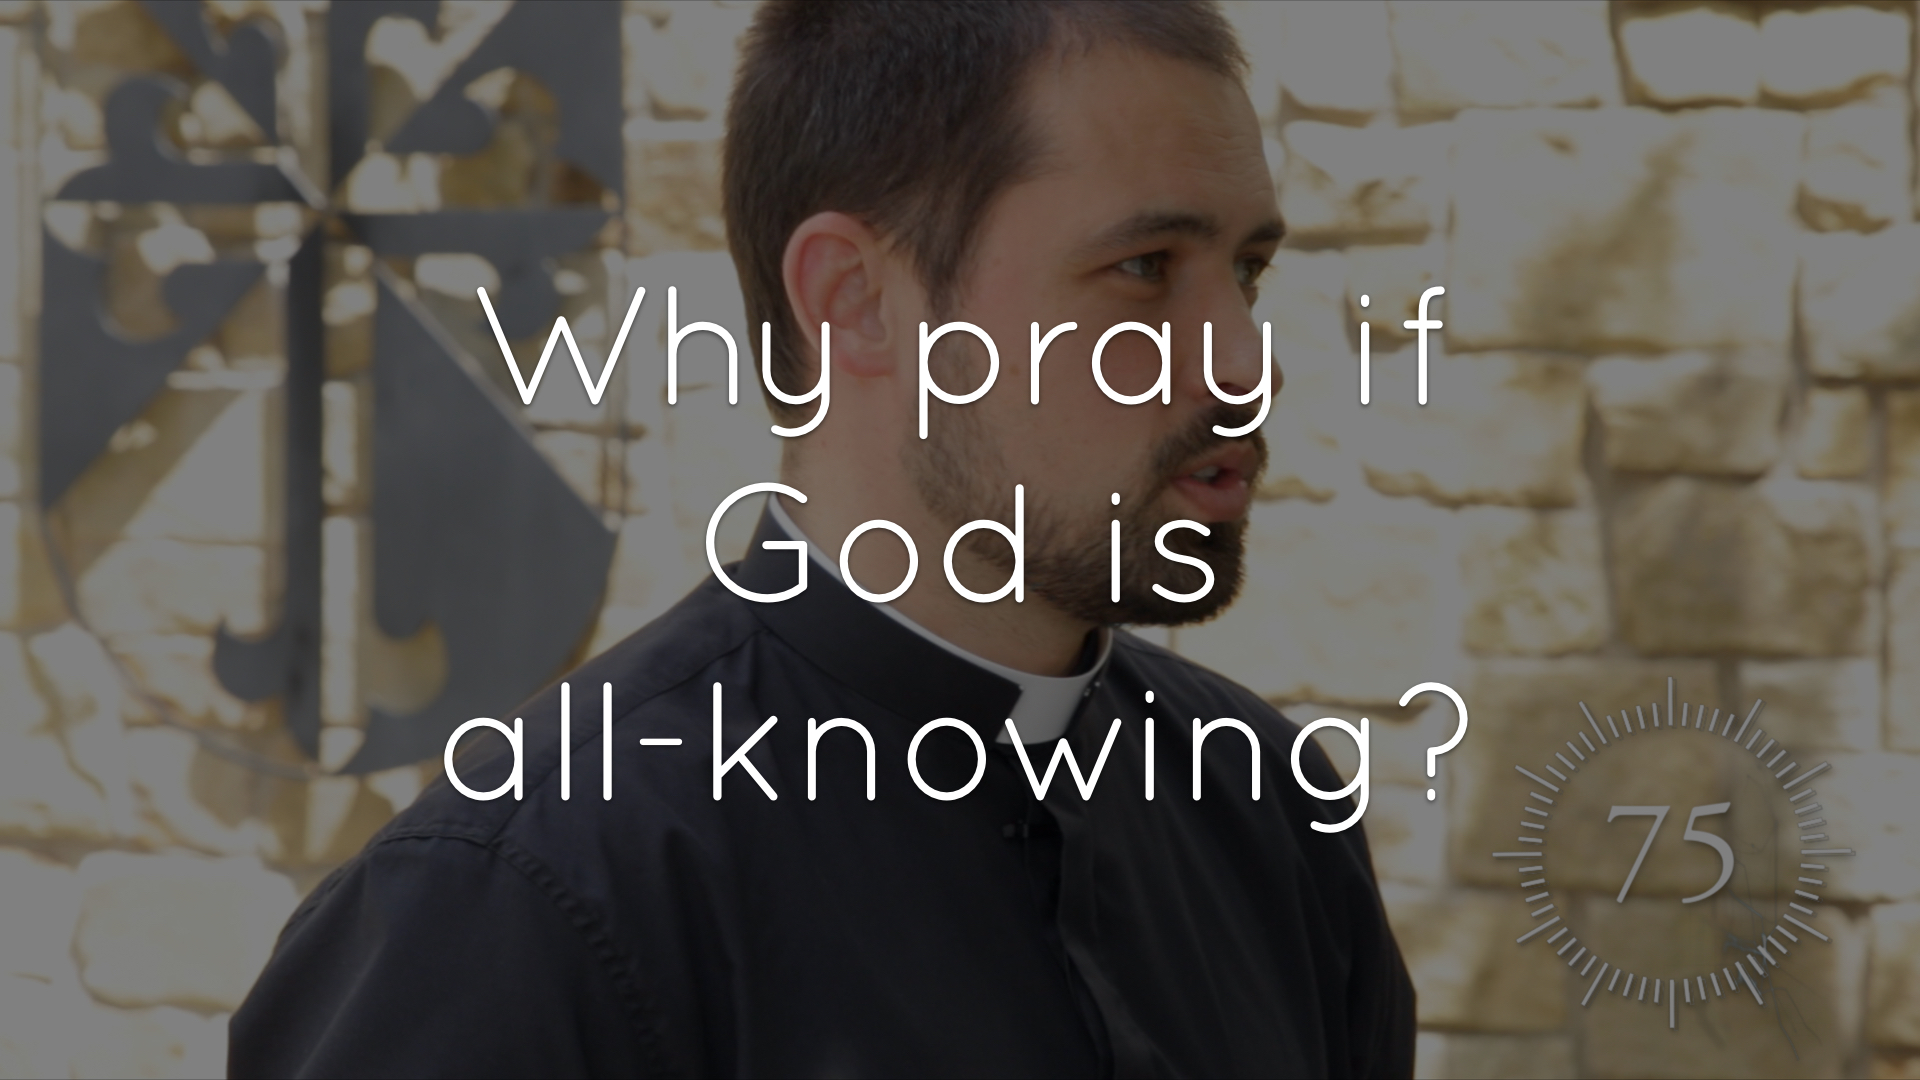 What is the point of prayer if God is all-knowing?